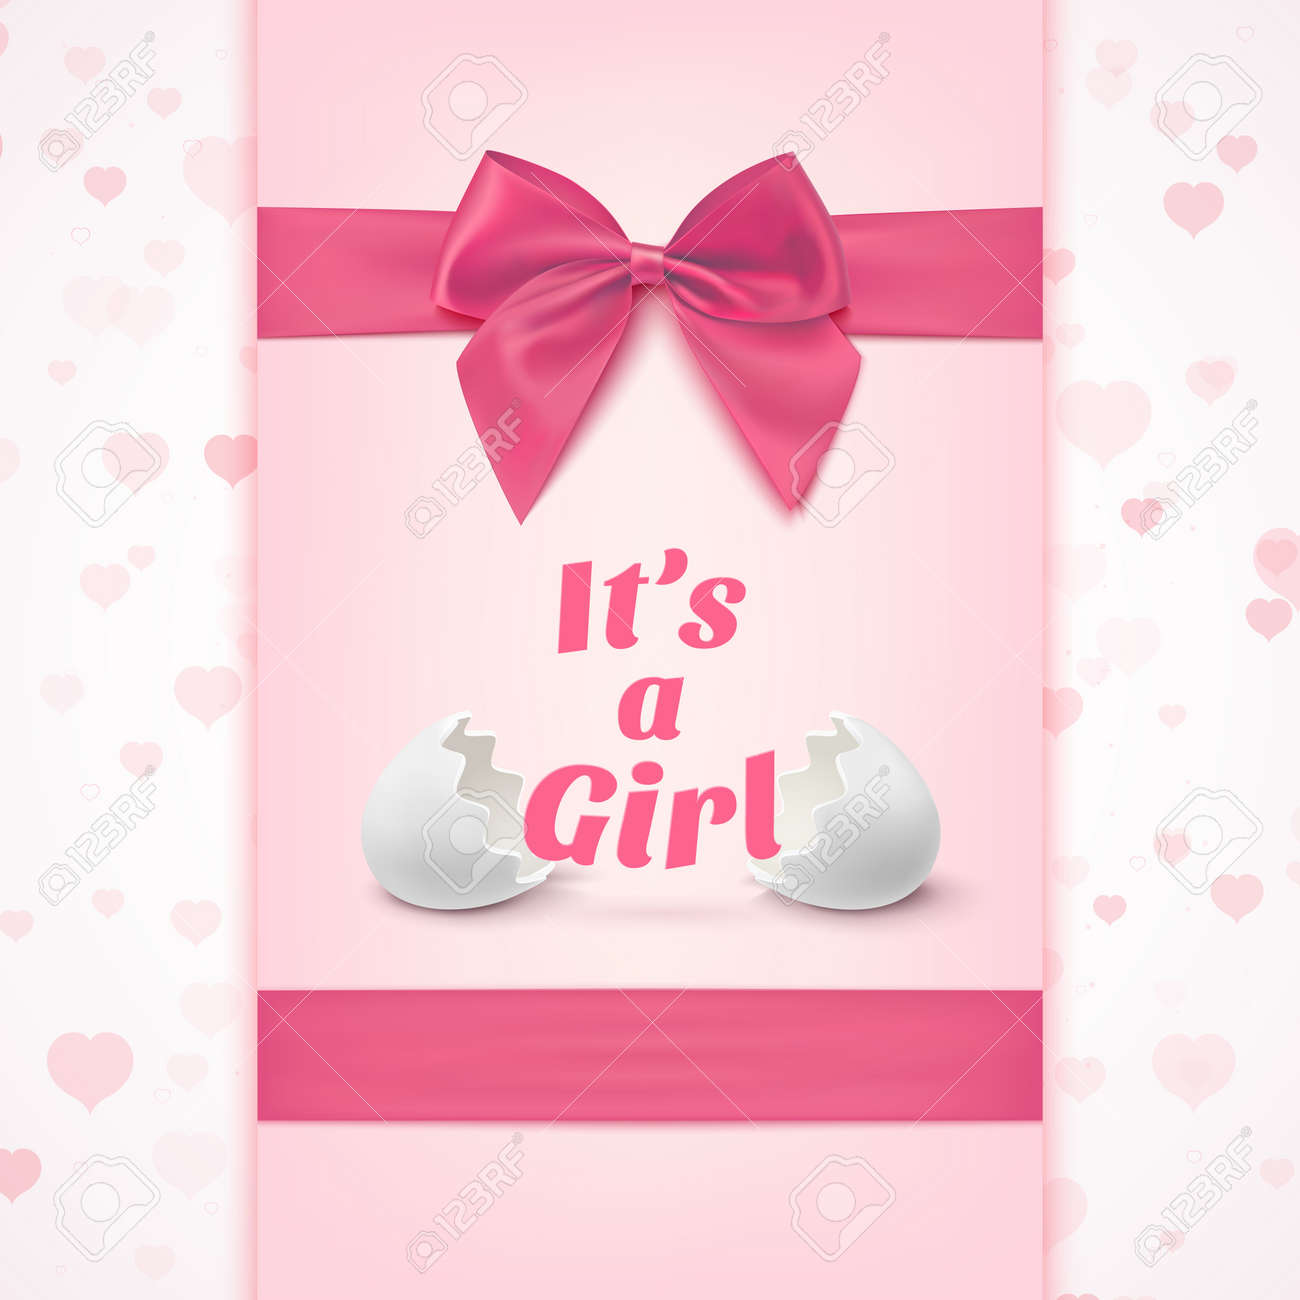 Its A Girl Template For Baby Shower Celebration Or Baby